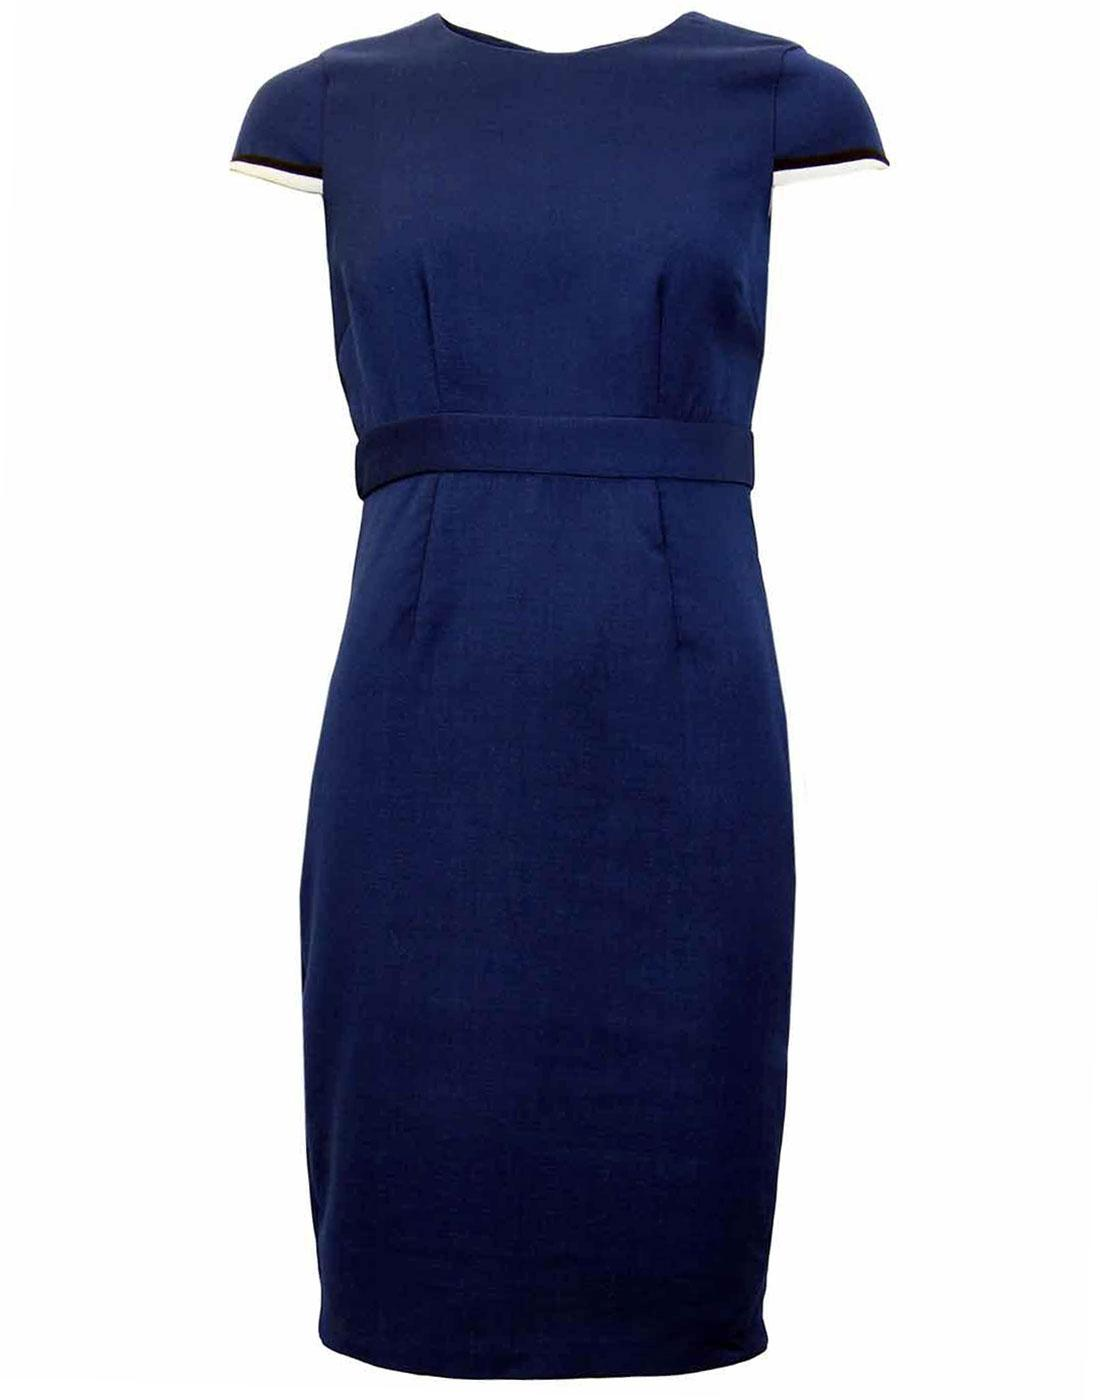 Gina DARLING Retro 50s Structured Pencil Dress